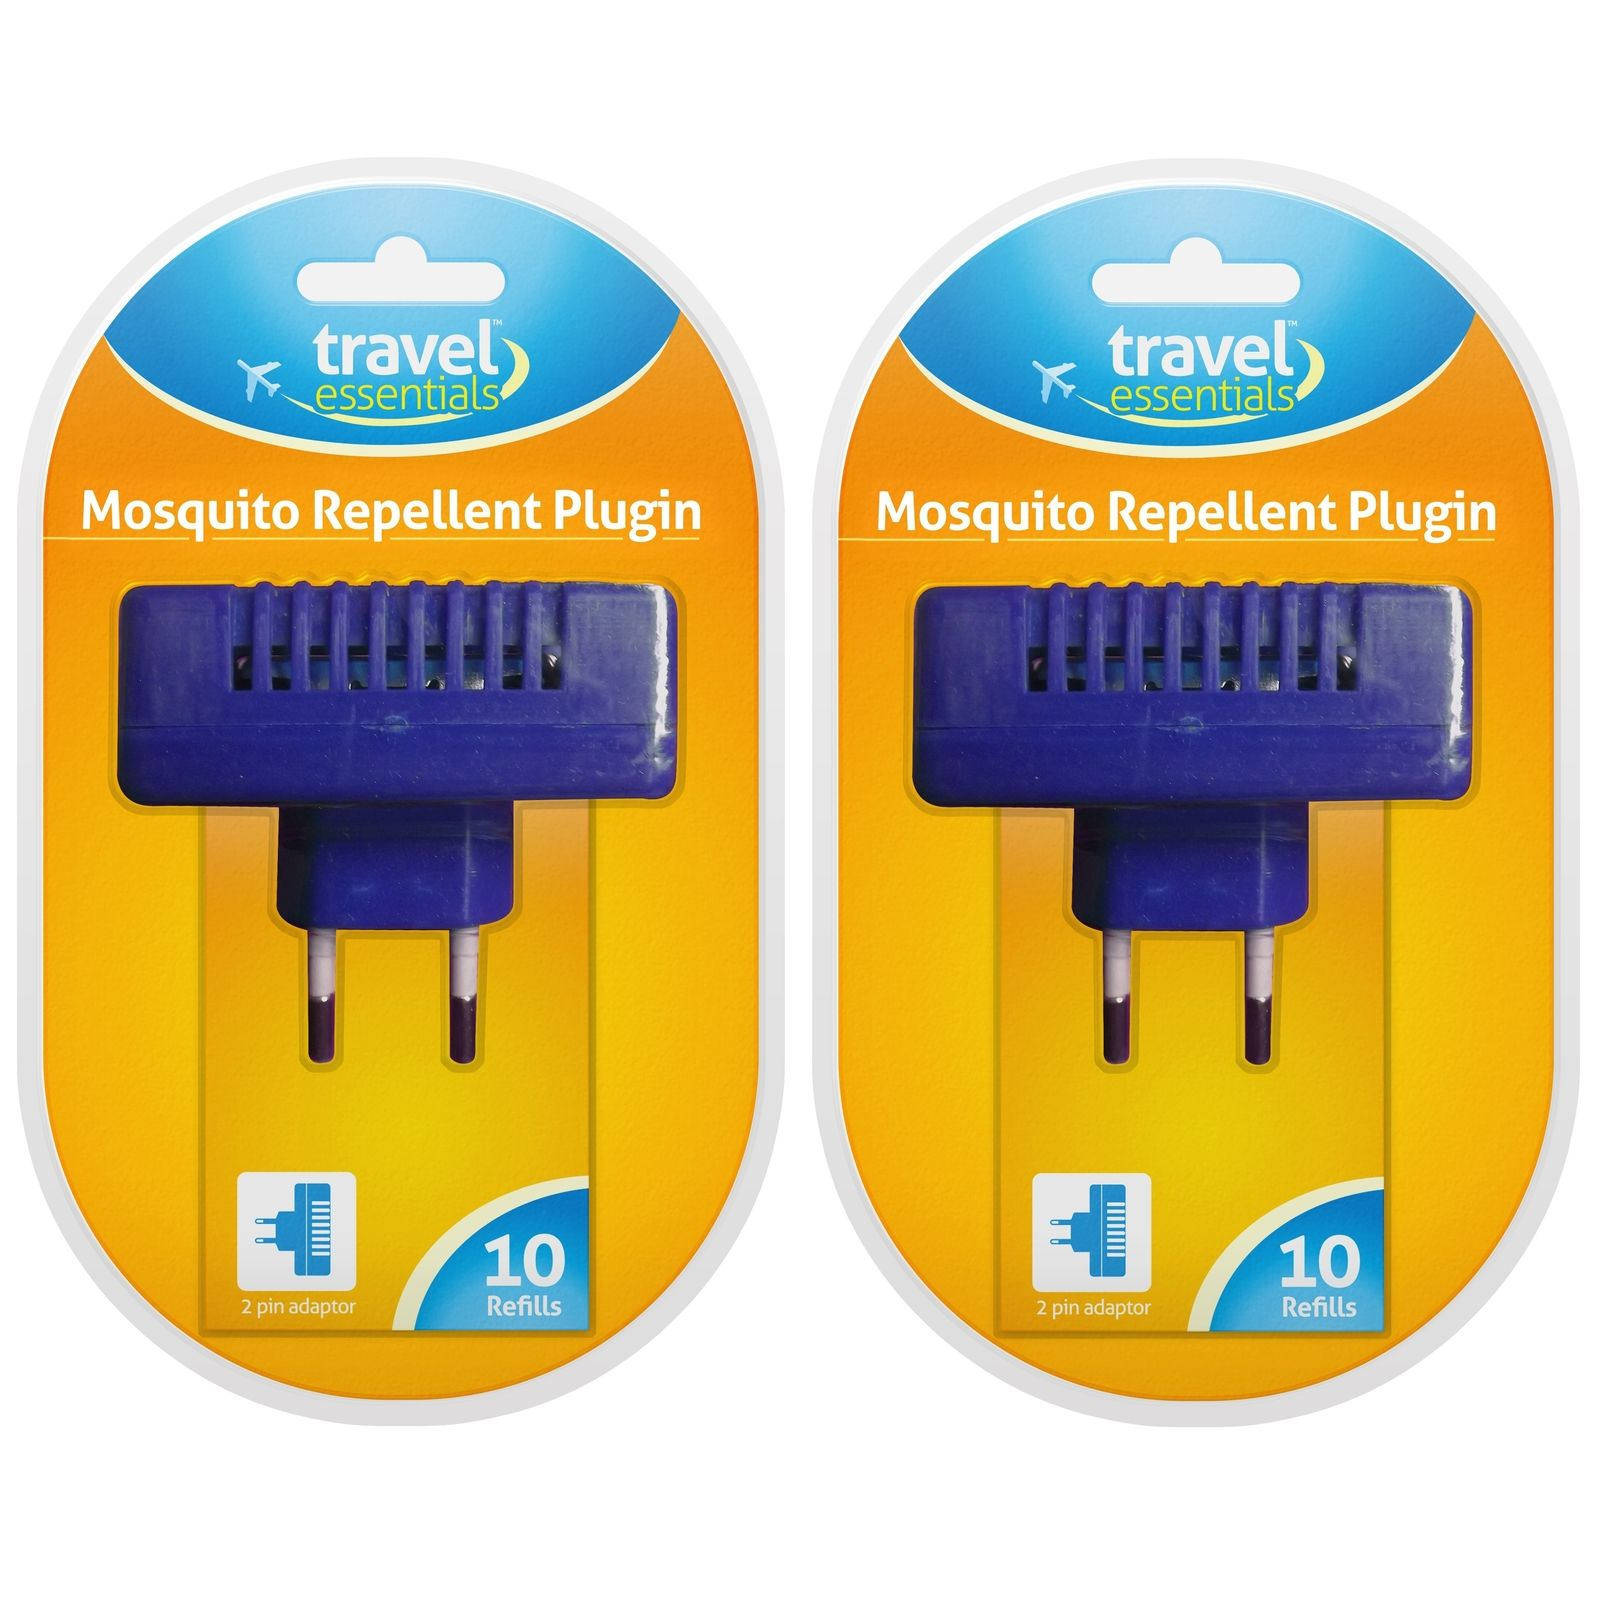 2 x Plug-in Two Pin European Plug – Bug & Parasite Resistant With Refills